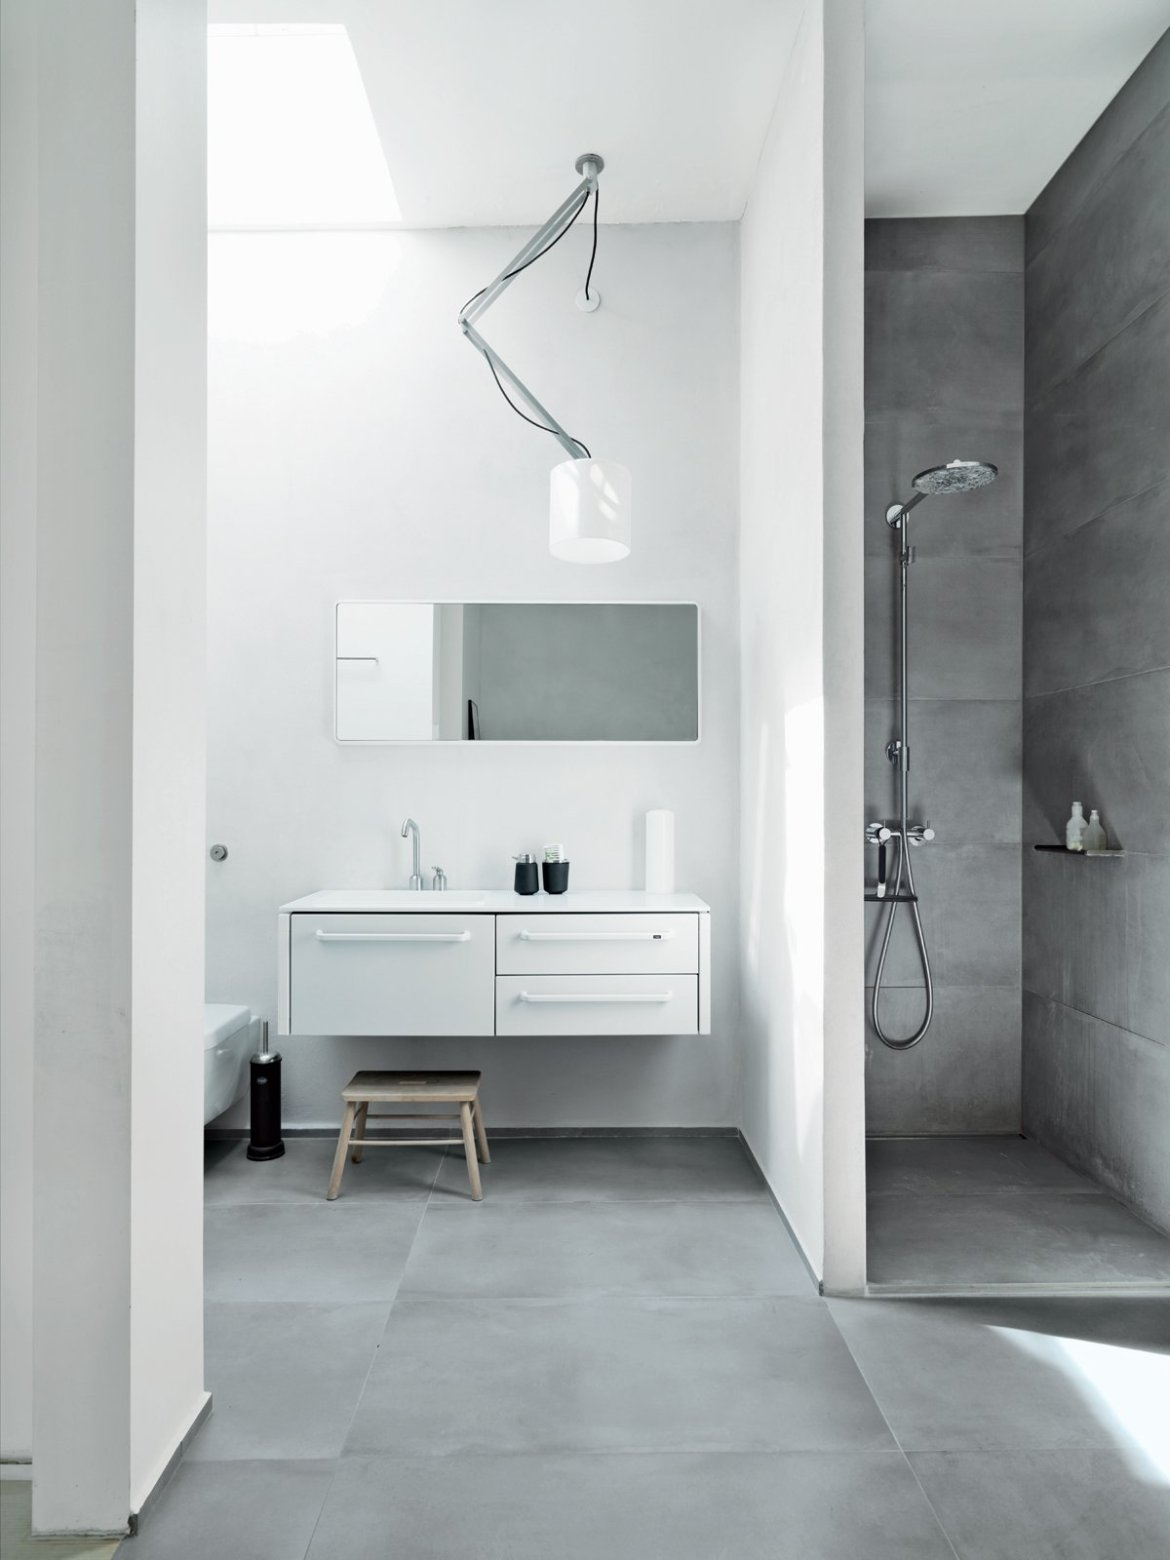 The resident family shares one main bathroom, which is outfitted with Vipp's line of products: 982 bath furniture, a 906 faucet, and a 992 mirror. The shower sports a Raindance Connect showerhead by Hansgrohe, and there is a wall-mounted toilet by Villeroy & Boch. The Nomad light fixture is from Modular Lighting Instruments, and the floors are topped with ceramic tiles by LaFaenza.